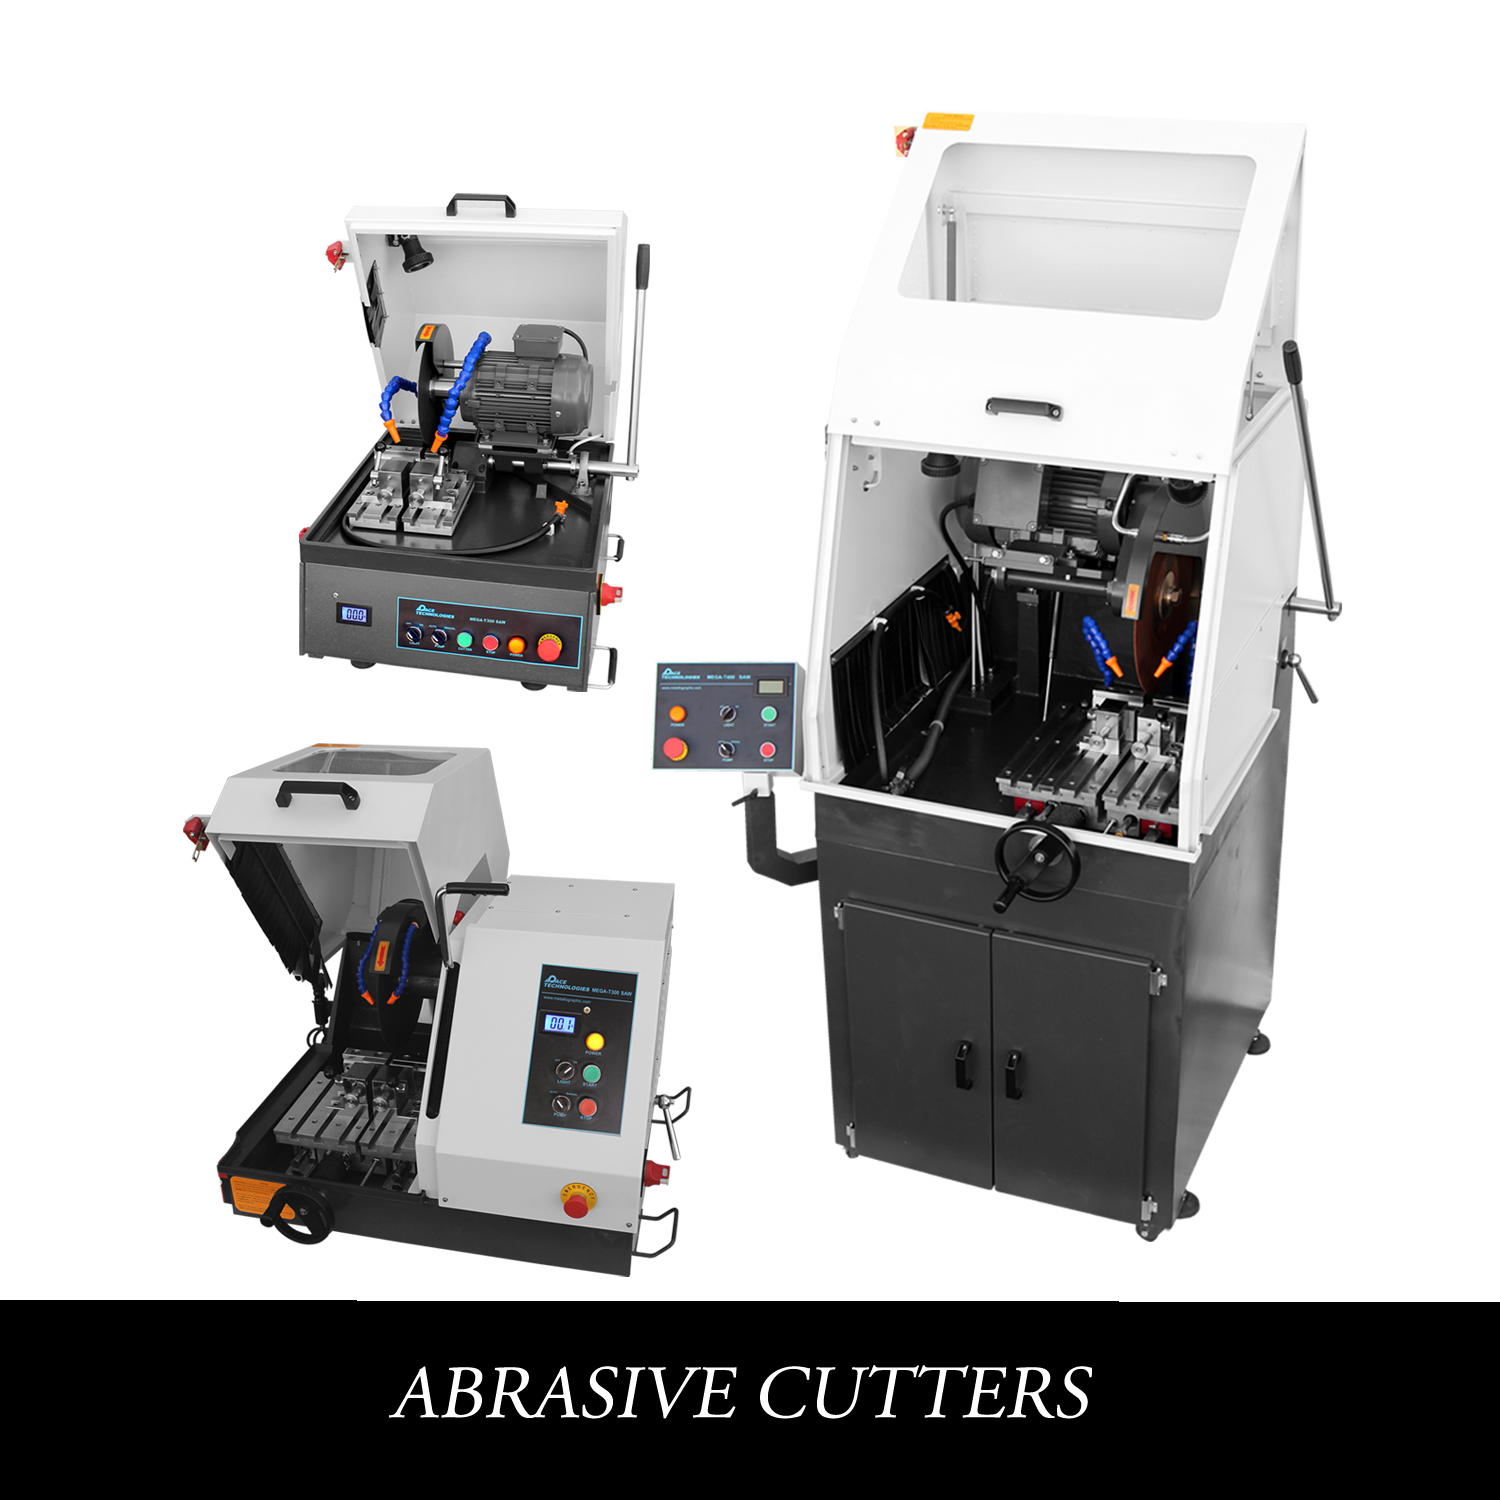 Metallographic Abrasive cutters